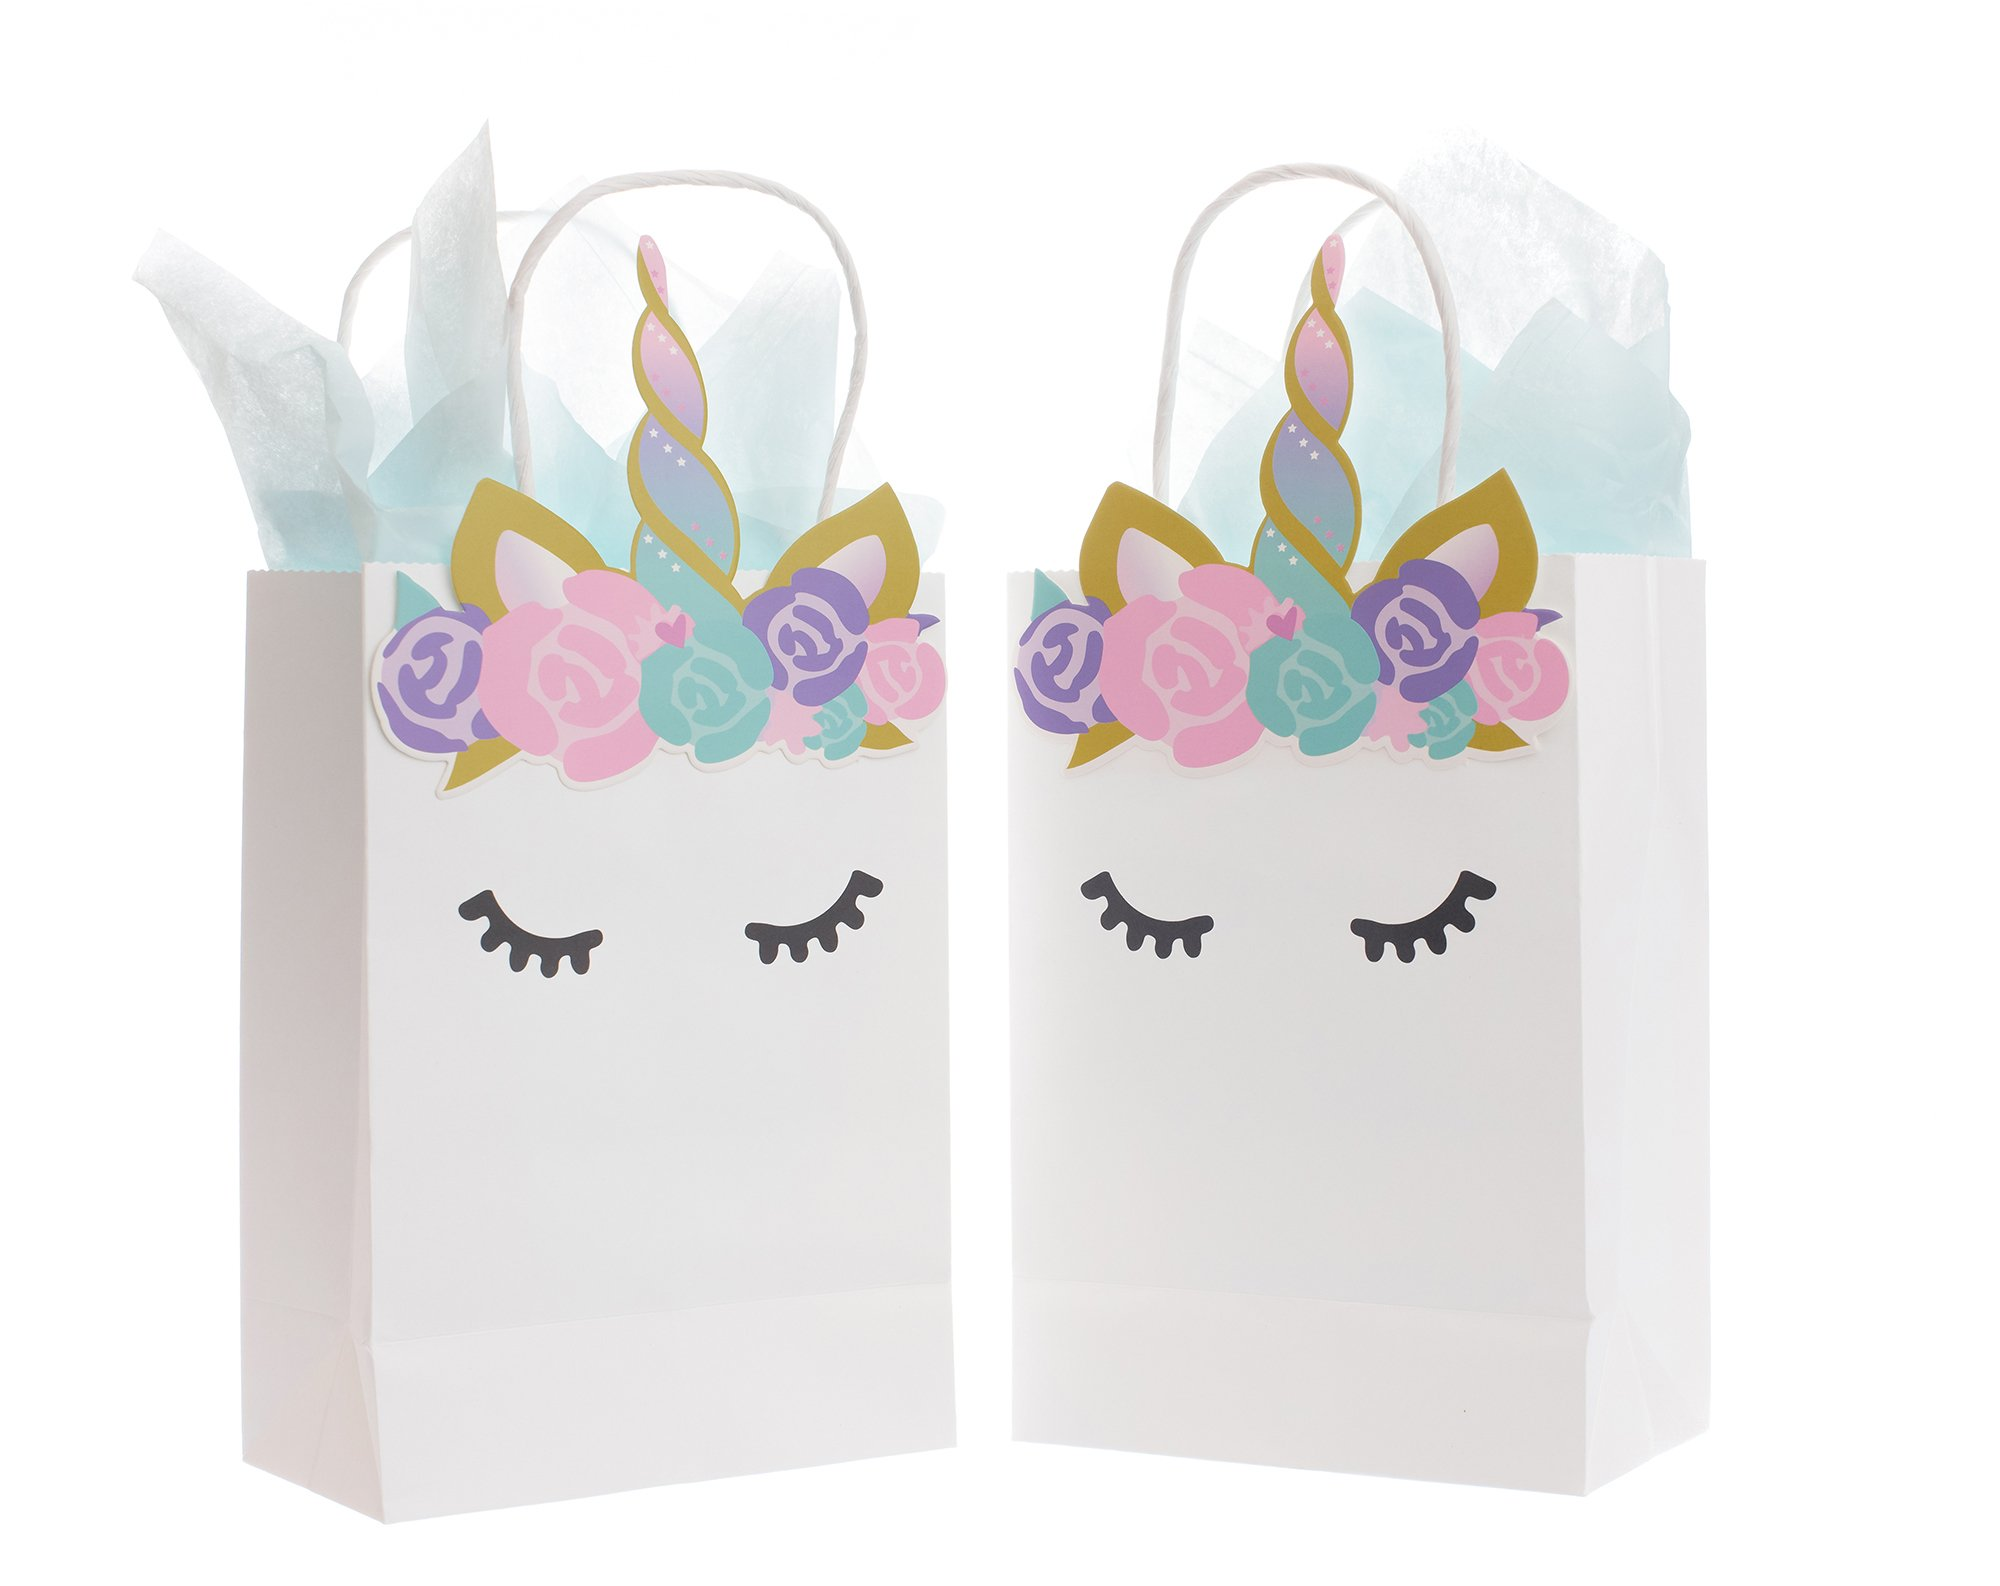 Quokkaloco Unicorn Party Bags for Favors, Gifts, Treats & Goodies (Set of 10) - Wedding, Shower, Birthday Party Supplies - Small Bags with Woven Handles, Handcrafted Flowers, Horn, Ears Art (White)